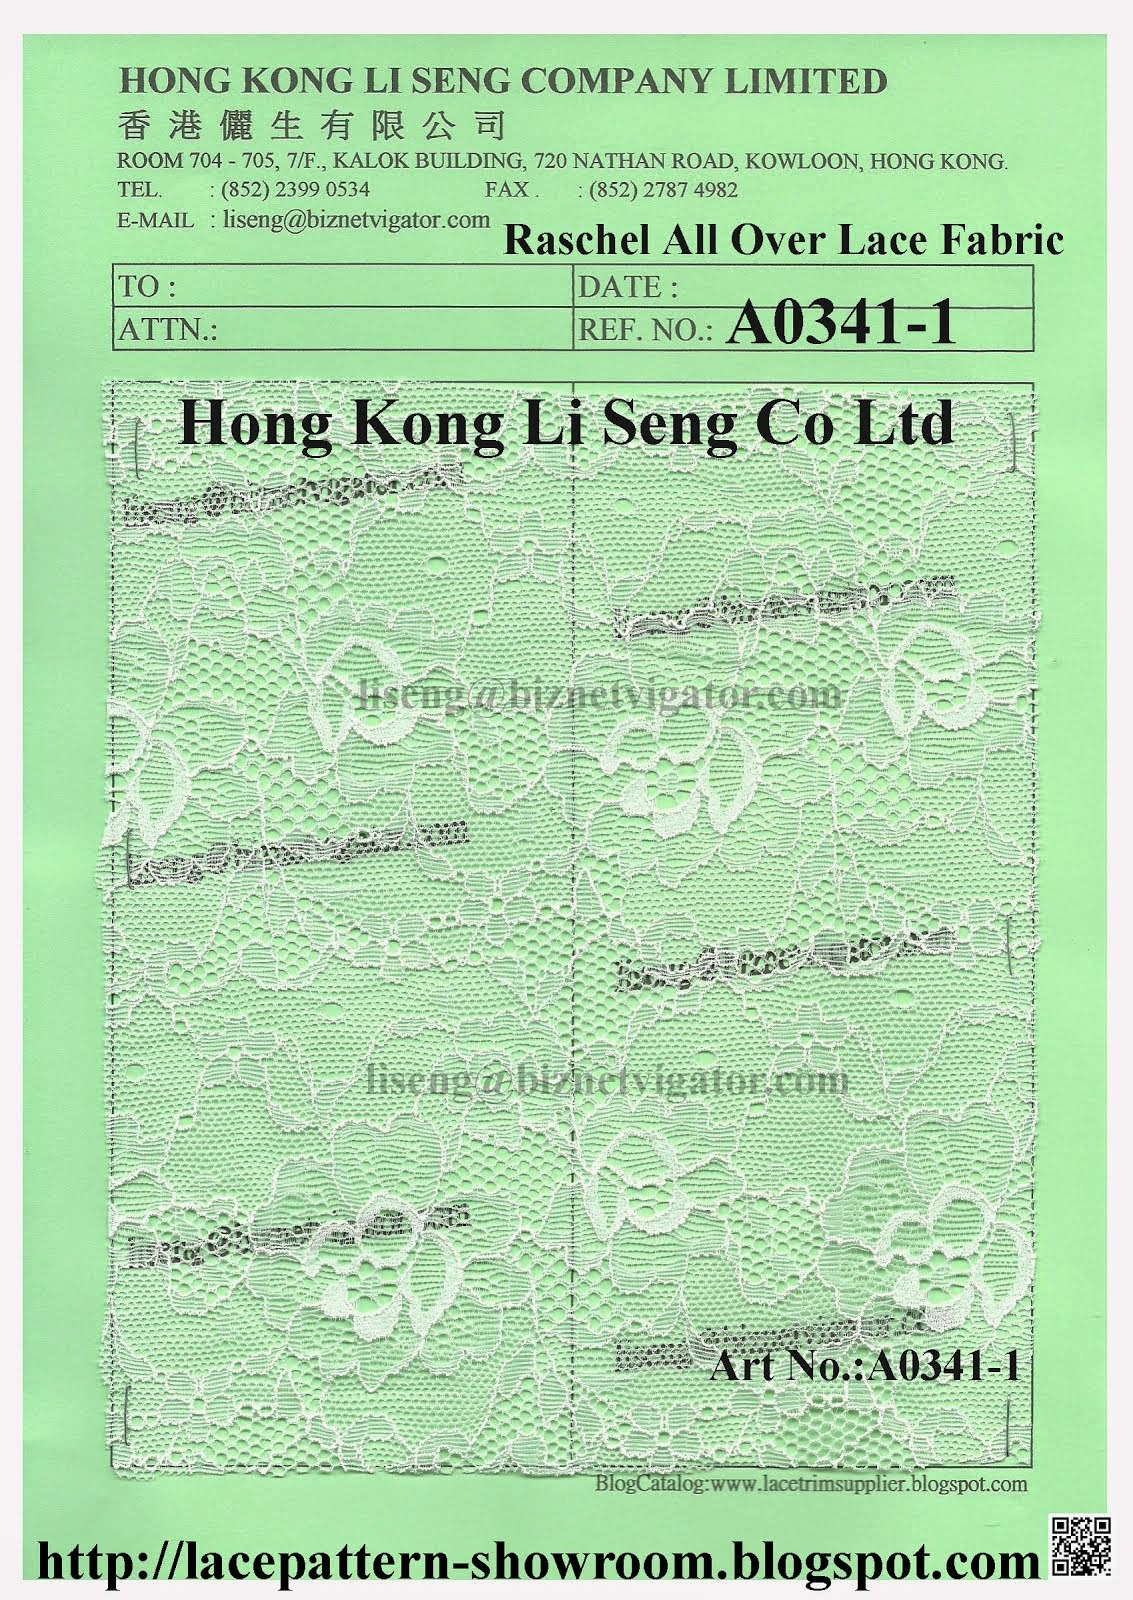 "Raschel All Over Lace Fabric Wholesaler and Supplier - "" Hong Kong Li Seng Co Ltd """